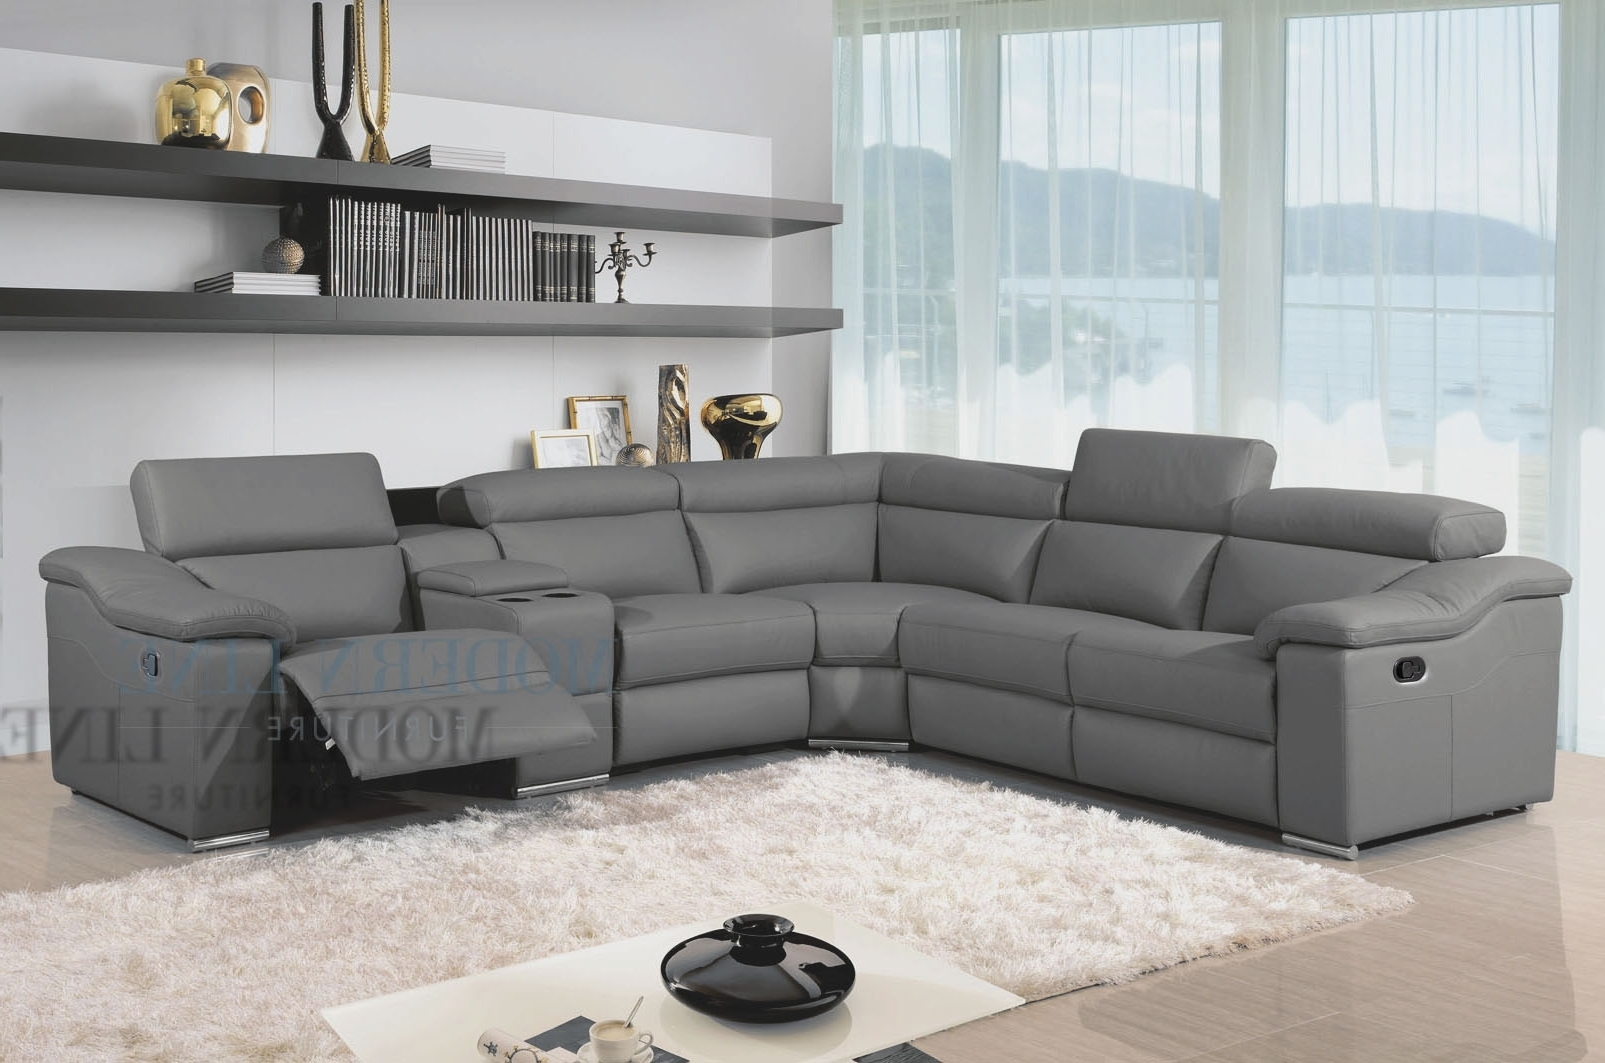 Vancouver Sectional Sofas With Most Current Incredible Modern Sectional Sofas Vancouver – Buildsimplehome (View 14 of 15)